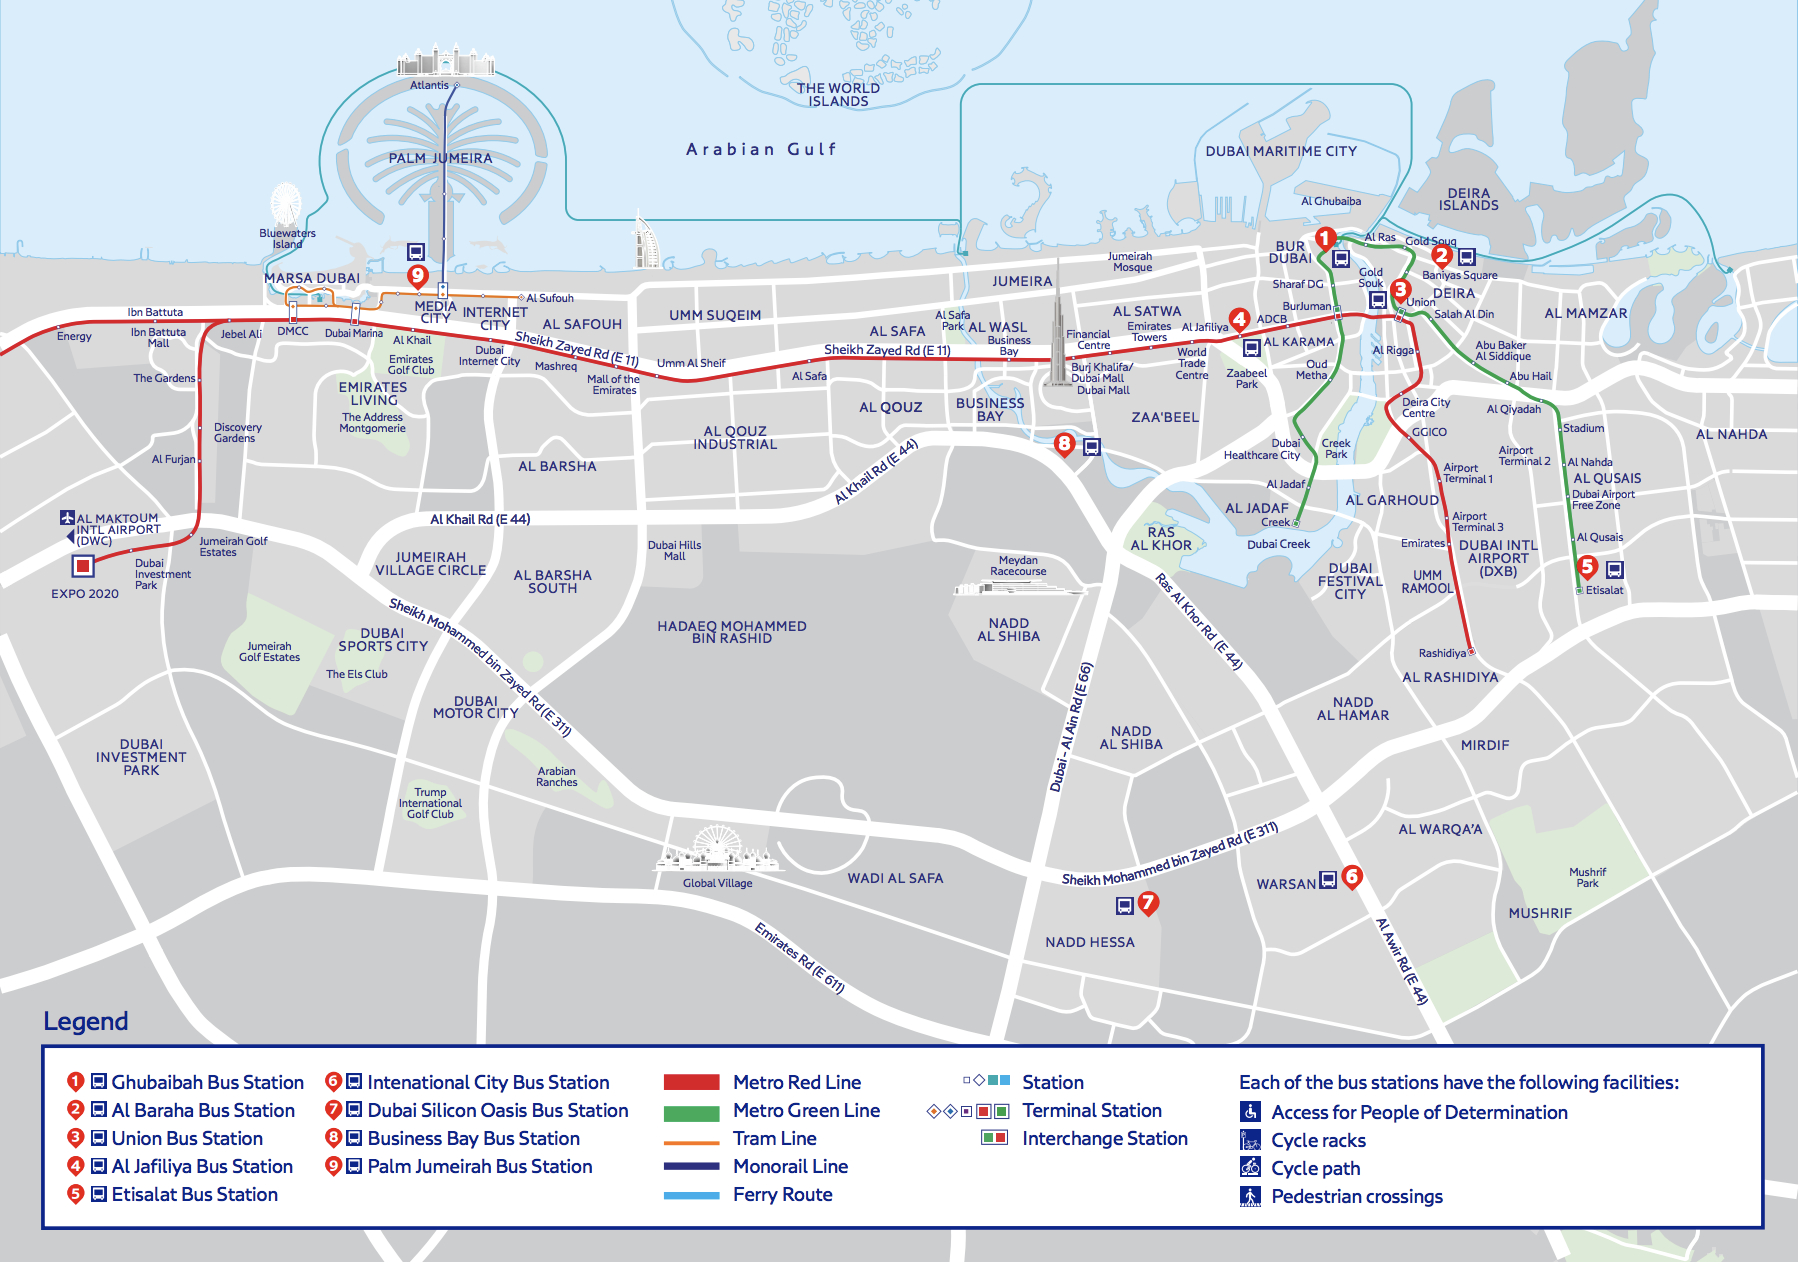 RTA to build cycle paths around Expo 2020 bus stations